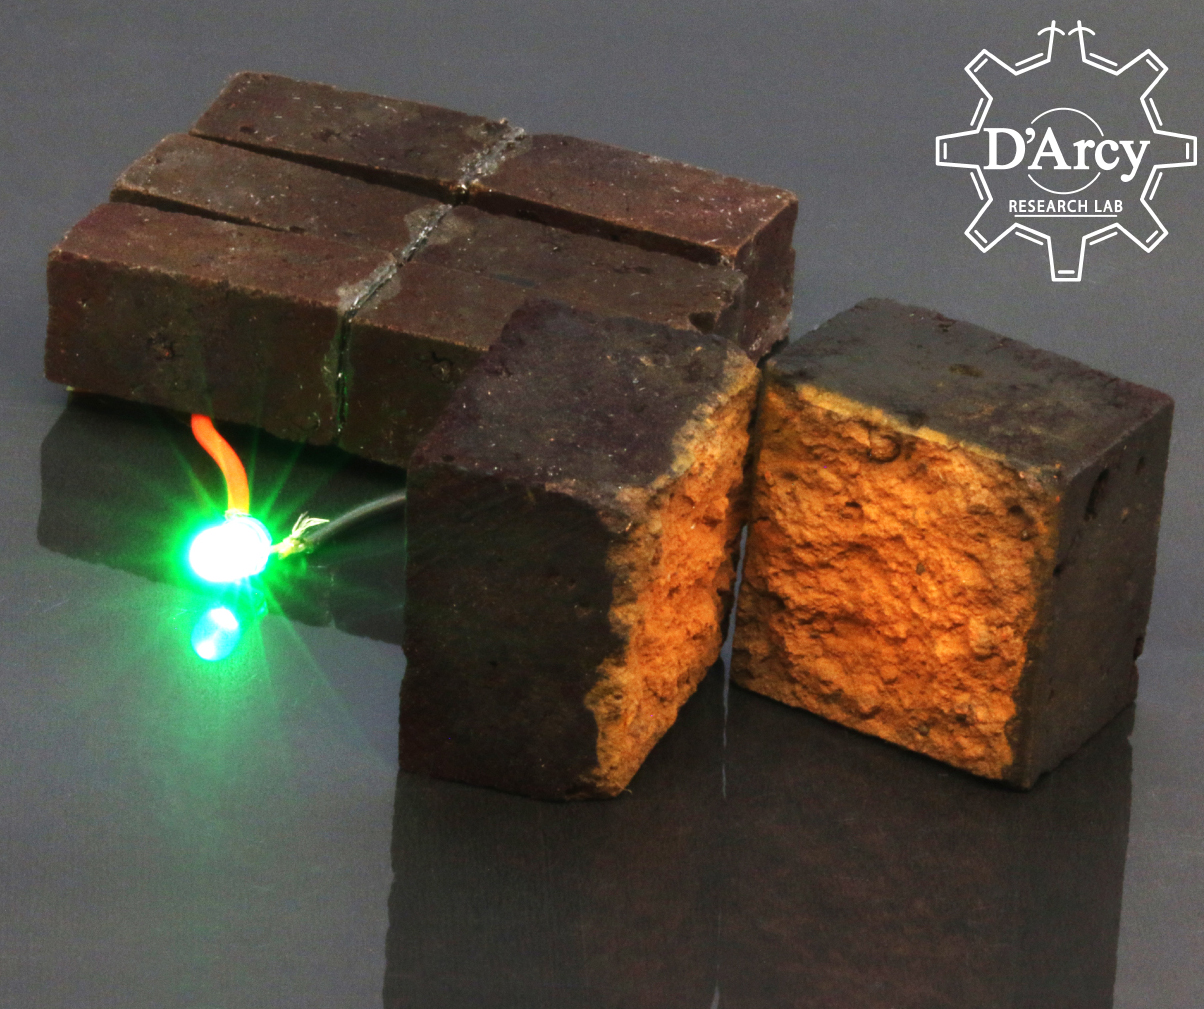 Bricks that store energy created by scientists and they could one day power your home